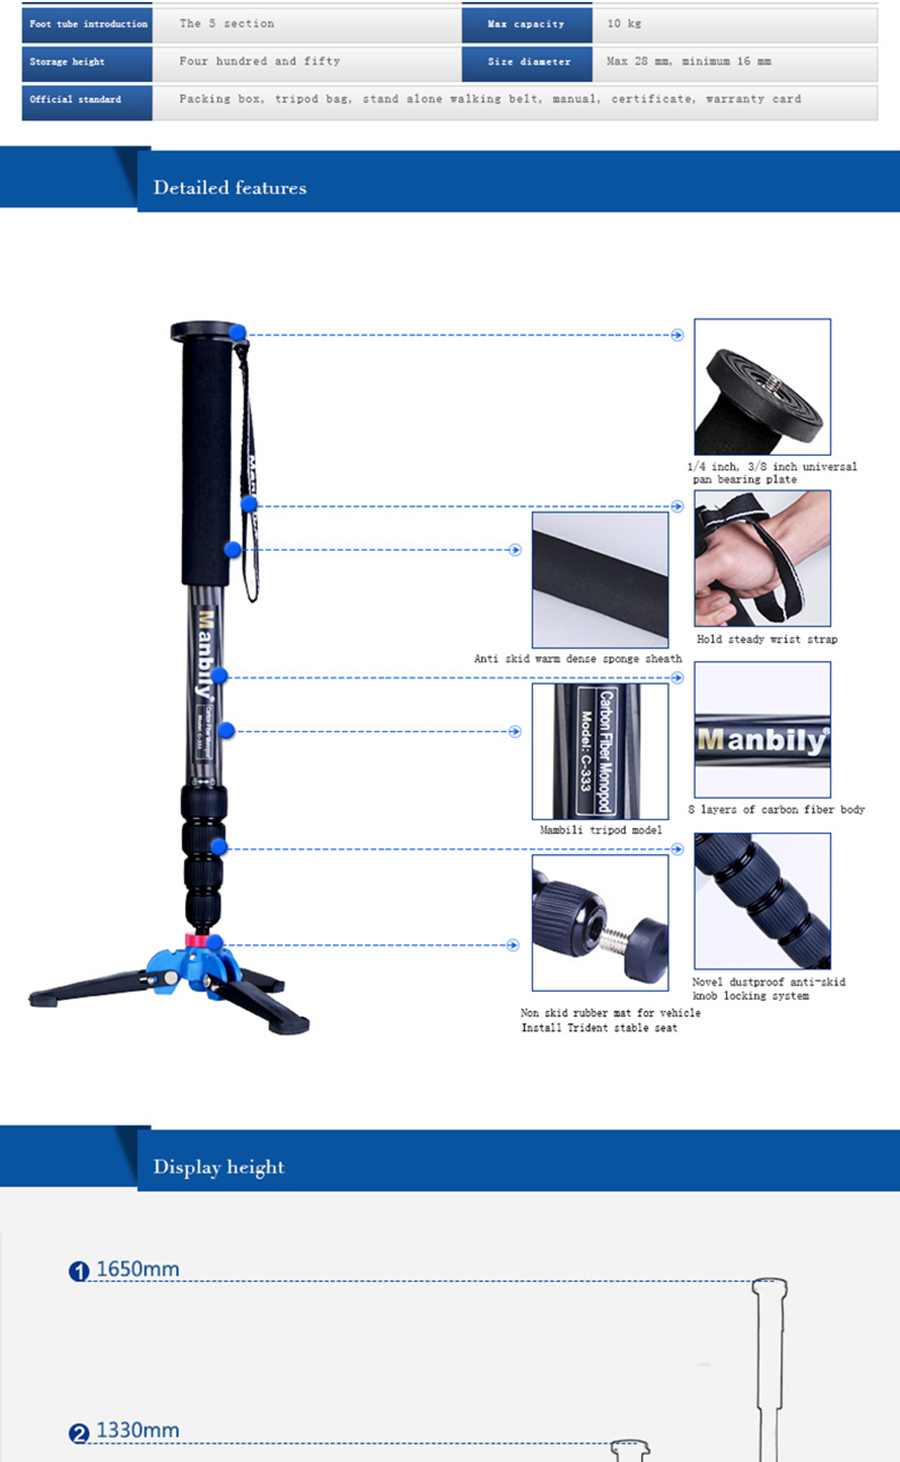 Manbily C-333 Professional Carbon Fiber Portable Travel Monopod Bracket can Stand with Mini Tripod Base for Digital DSLR Camera